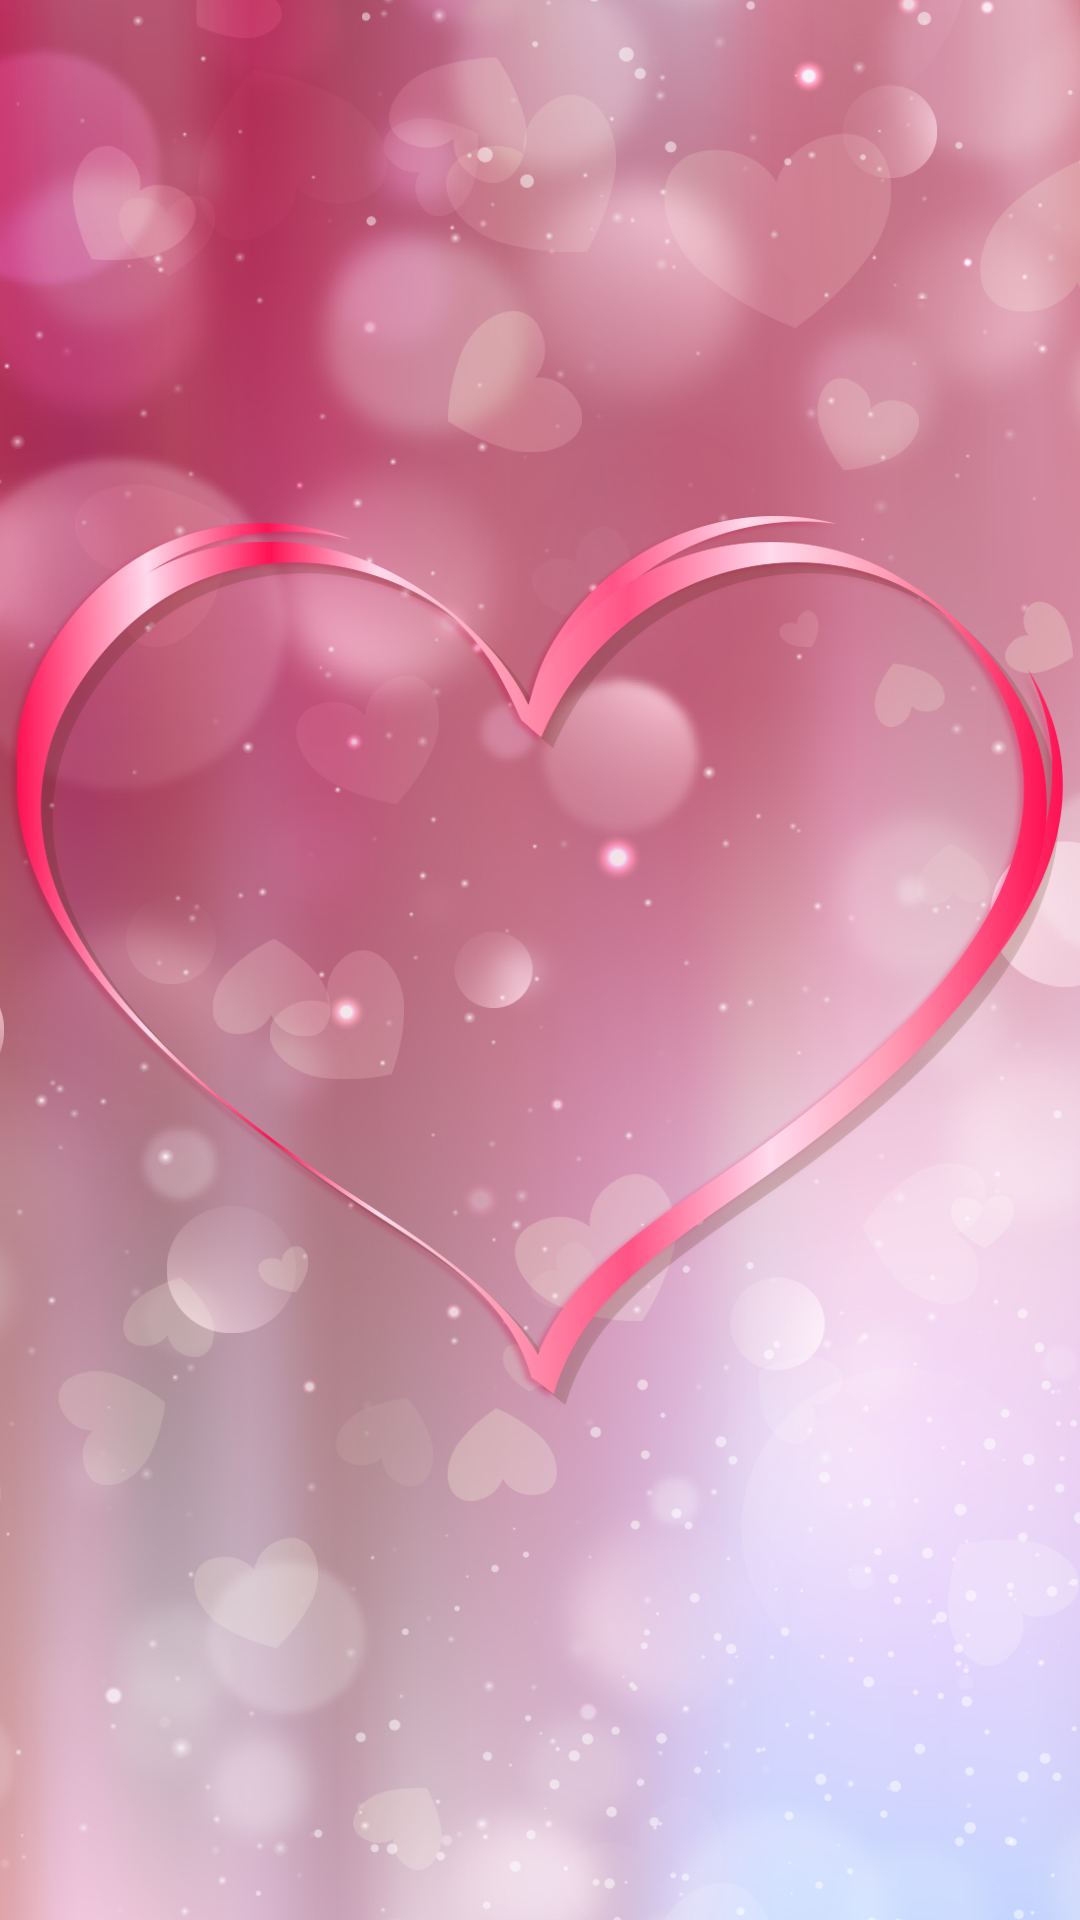 Free hd perfect heart phone wallpaper4569 perfect heart phone wallpaper voltagebd Images